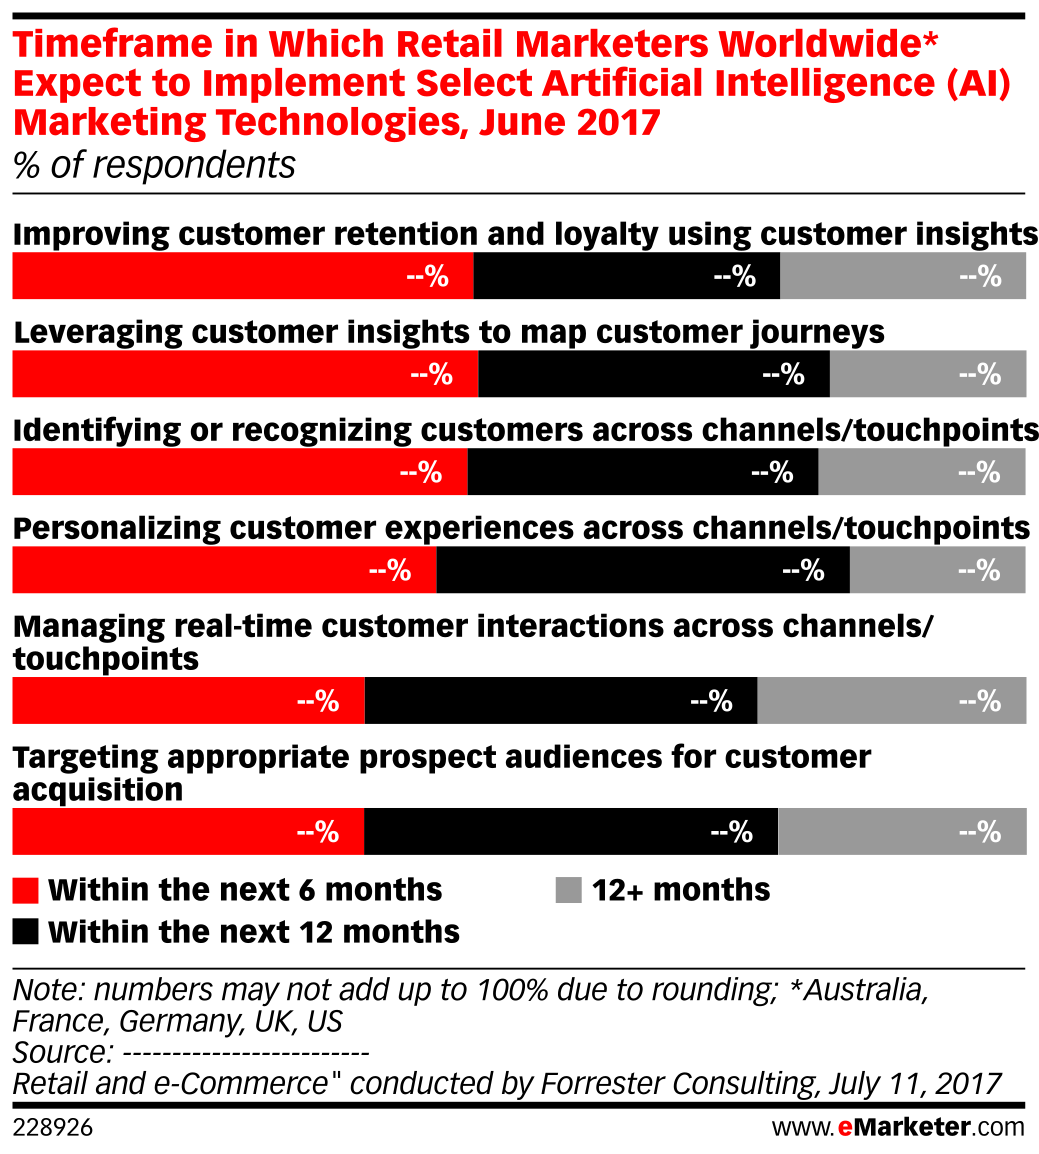 Timeframe in Which Retail Marketers Worldwide* Expect to Implement Select Artificial Intelligence (AI) Marketing Technologies, June 2017 (% of respondents)